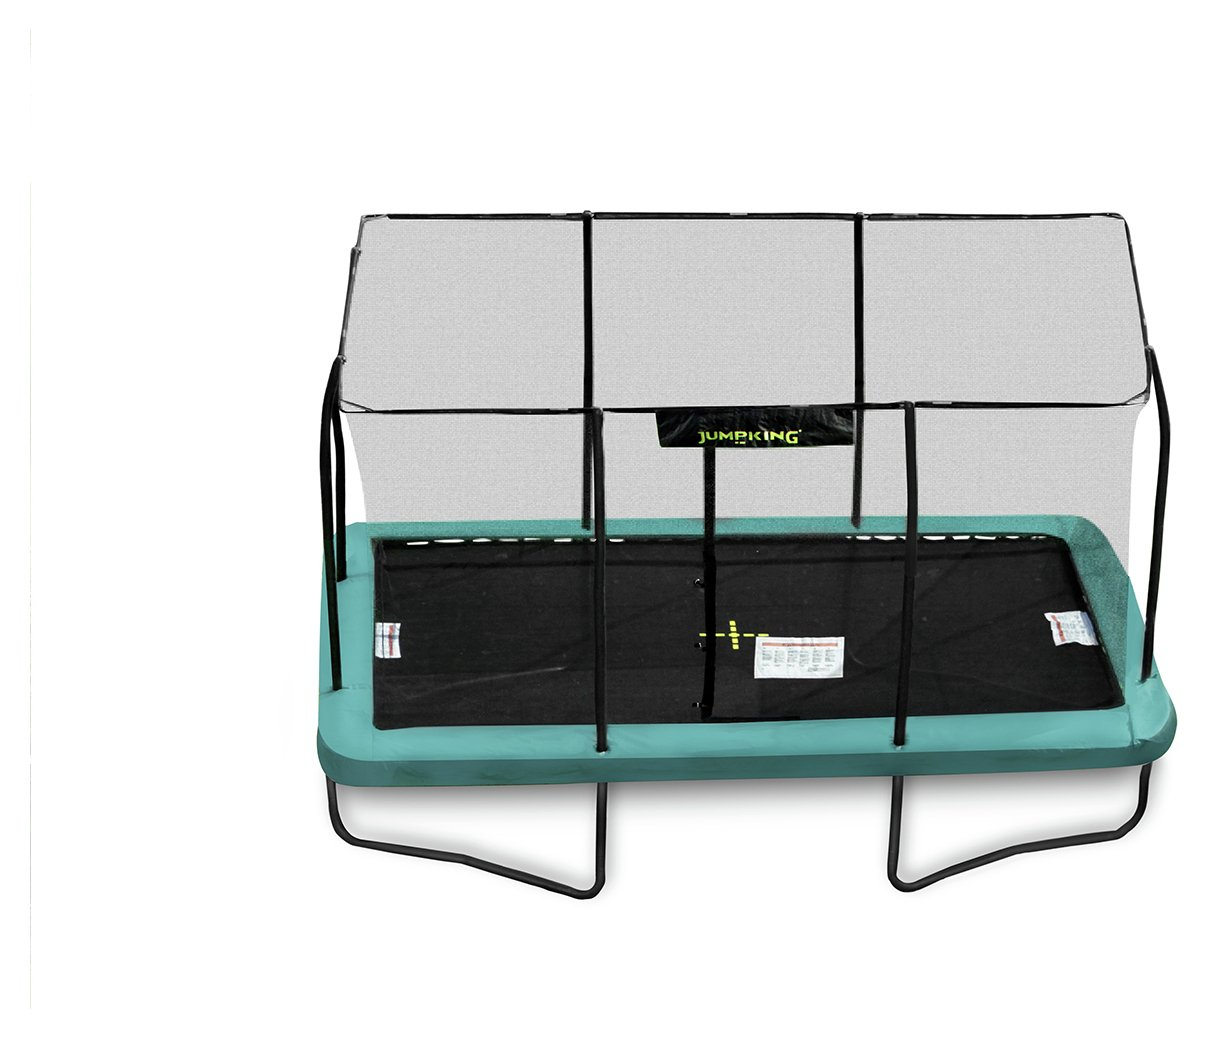 Image of Jumpking 8ft x 12ft Rectangular Trampoline with Enclosure